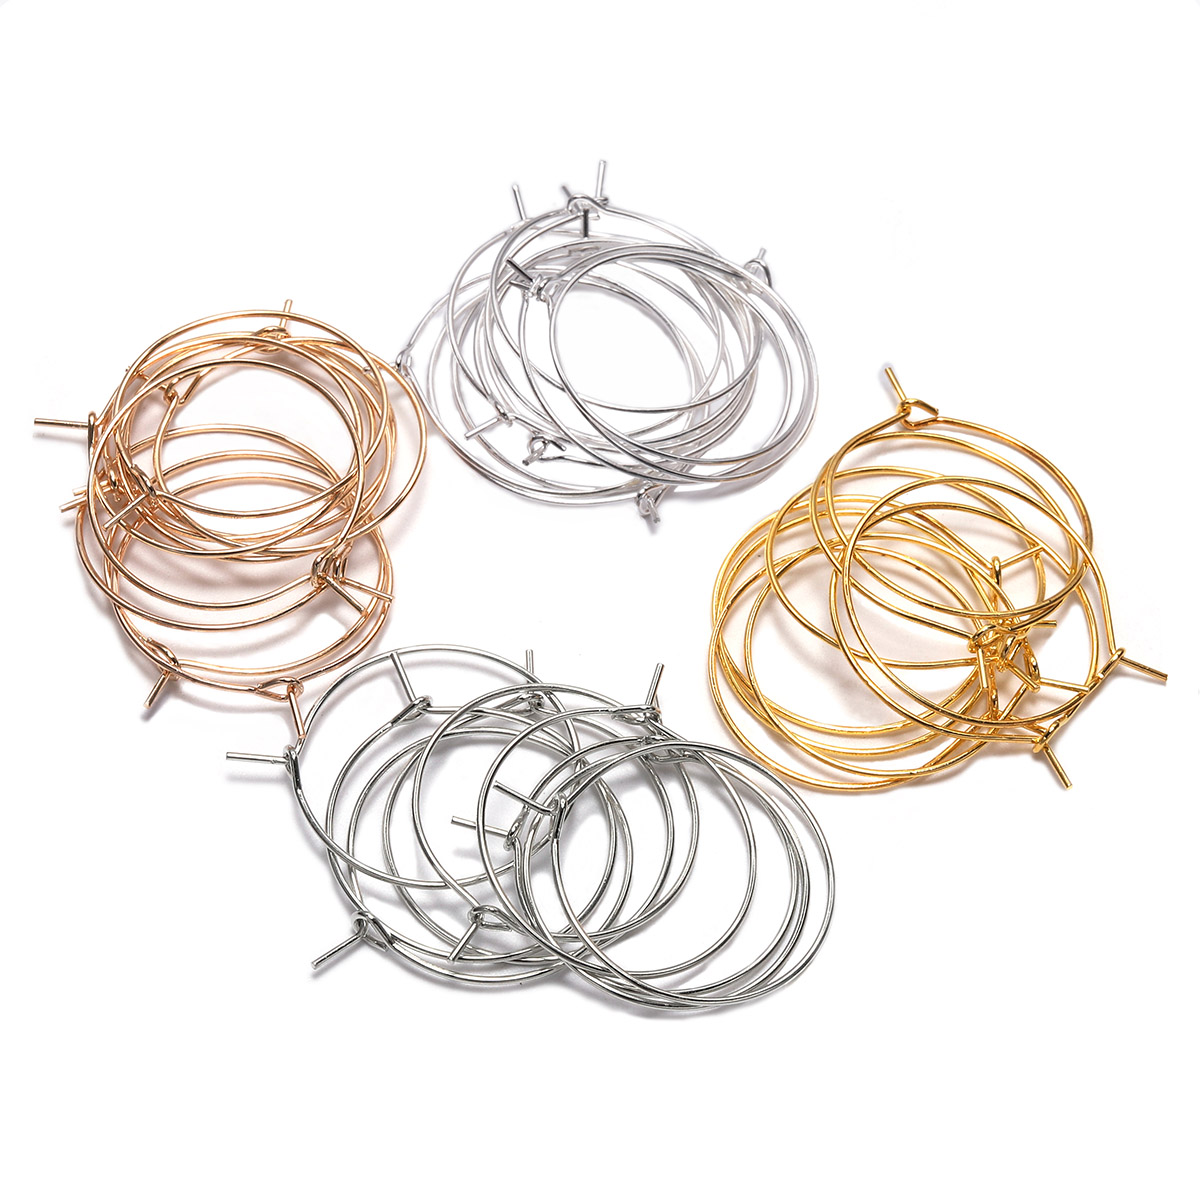 50pcs/lot 20 25 30 35 mm Silver KC Gold Hoops Earrings Big Circle Ear Wire Hoops Earrings Wires For DIY Jewelry Making Supplies(China)